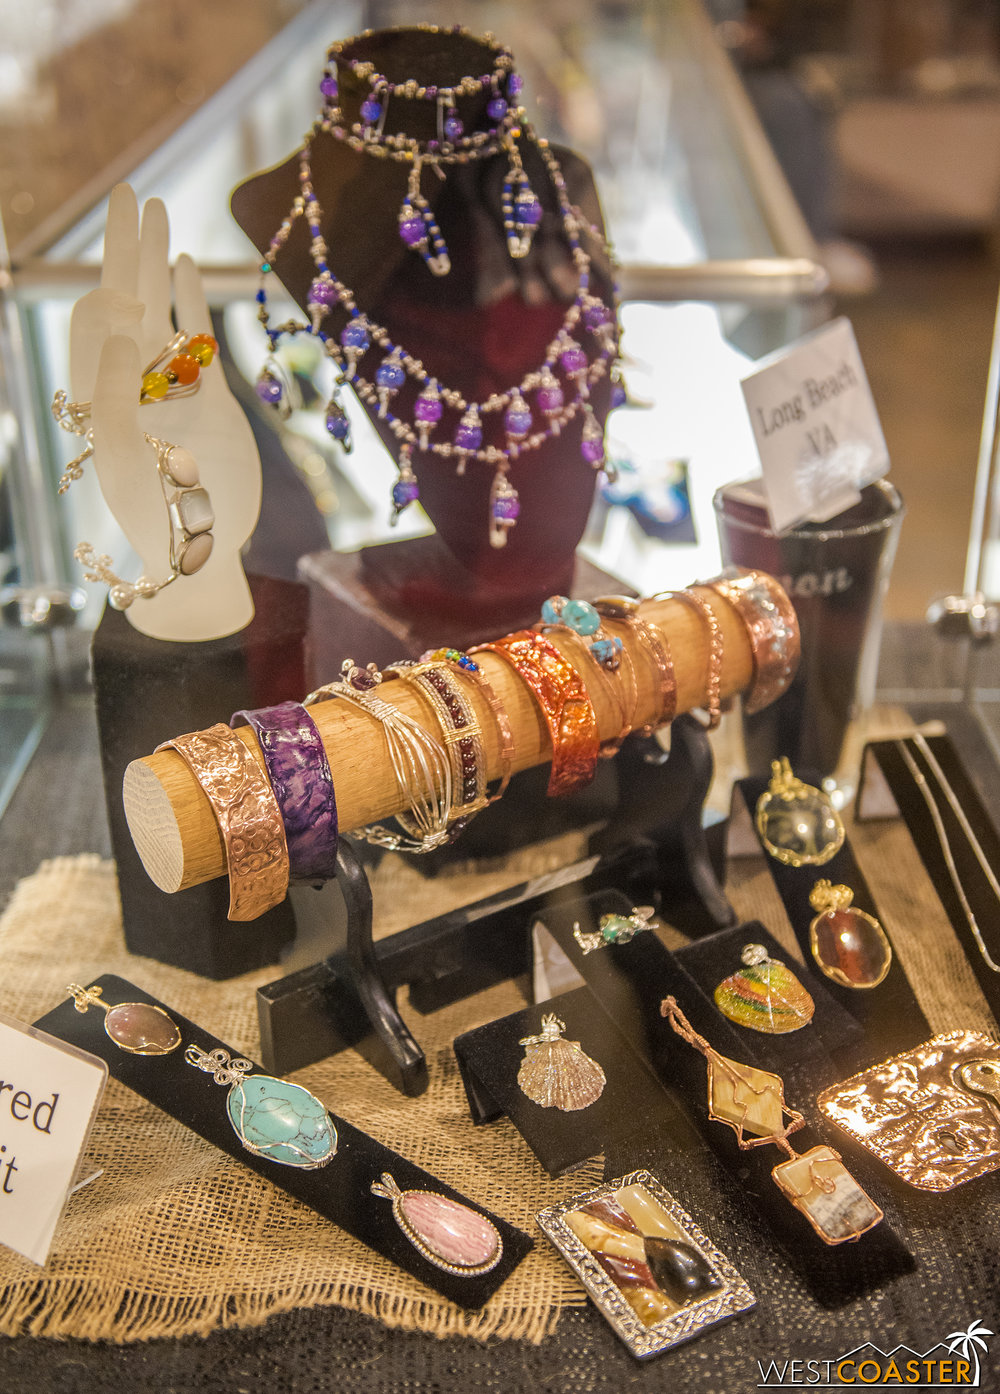 Also featured were home-made jewelry.